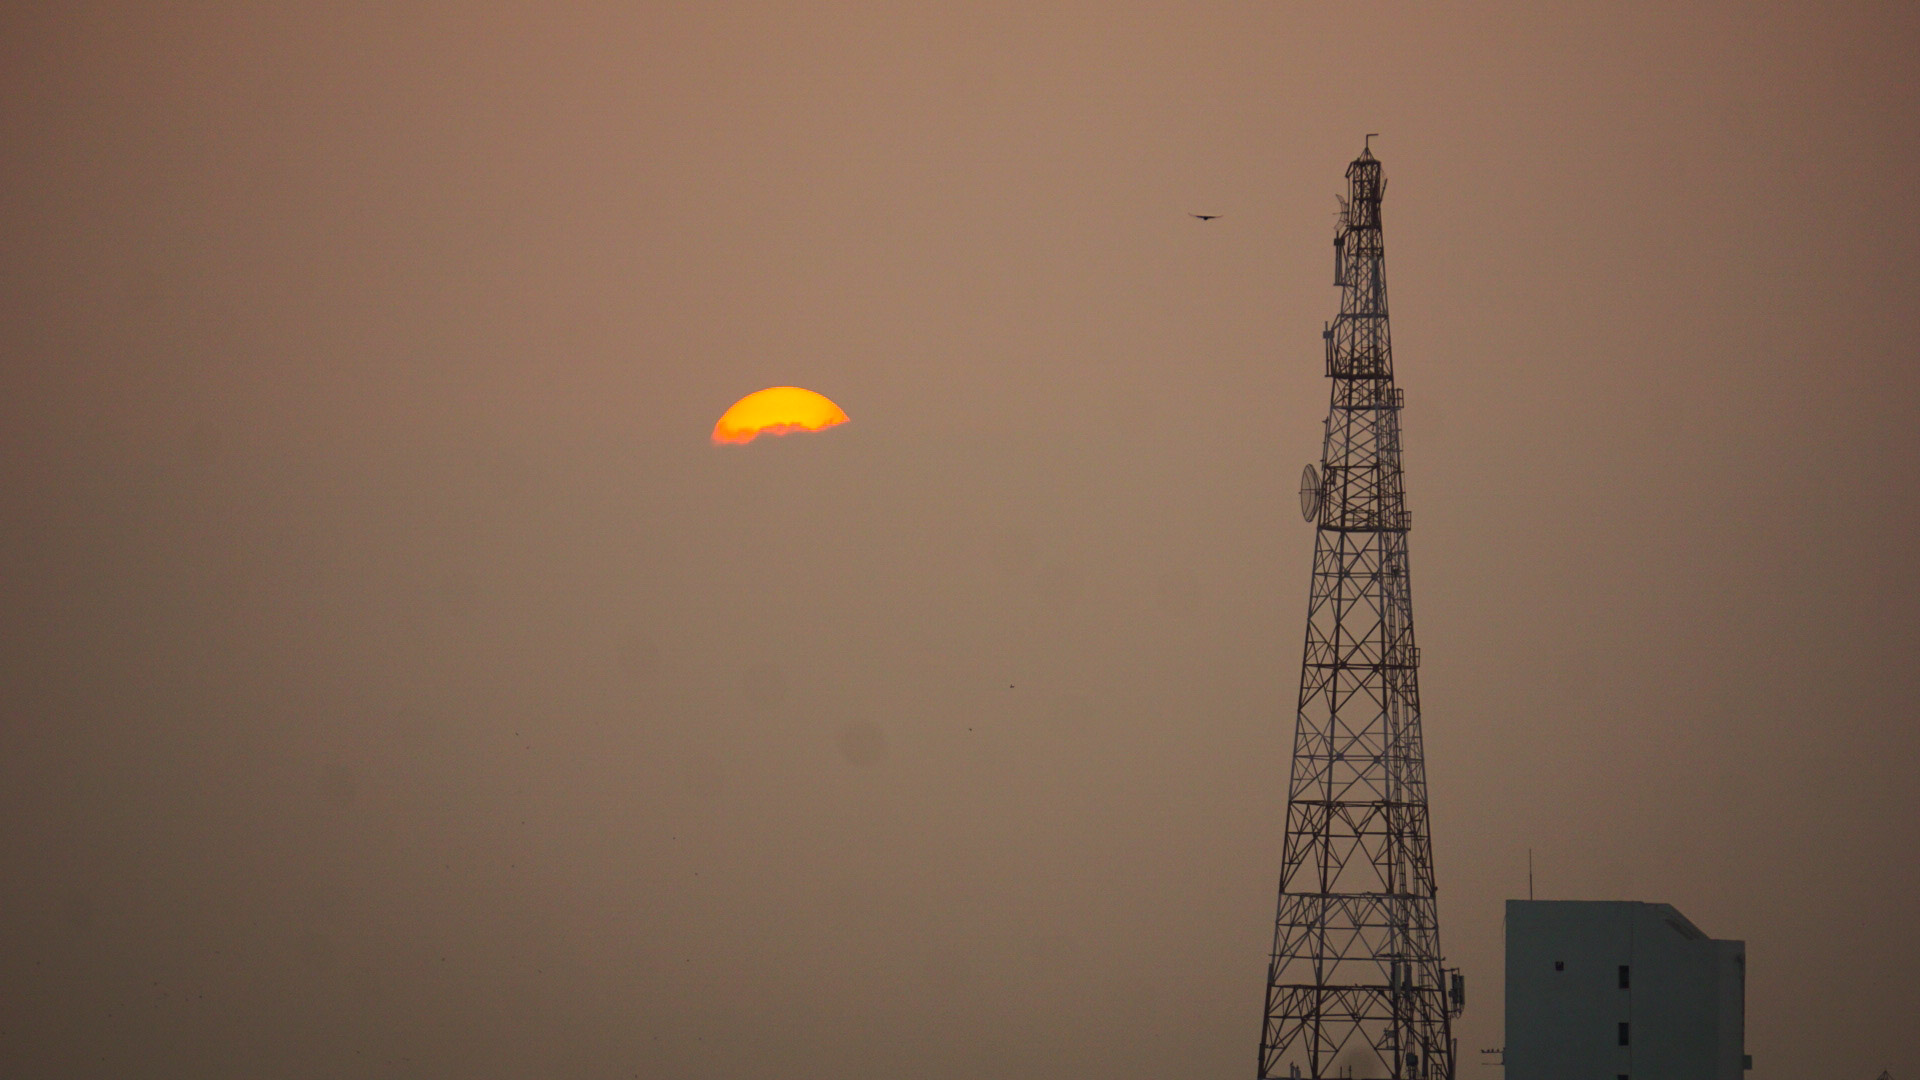 Telecommunication tower with sunset sky